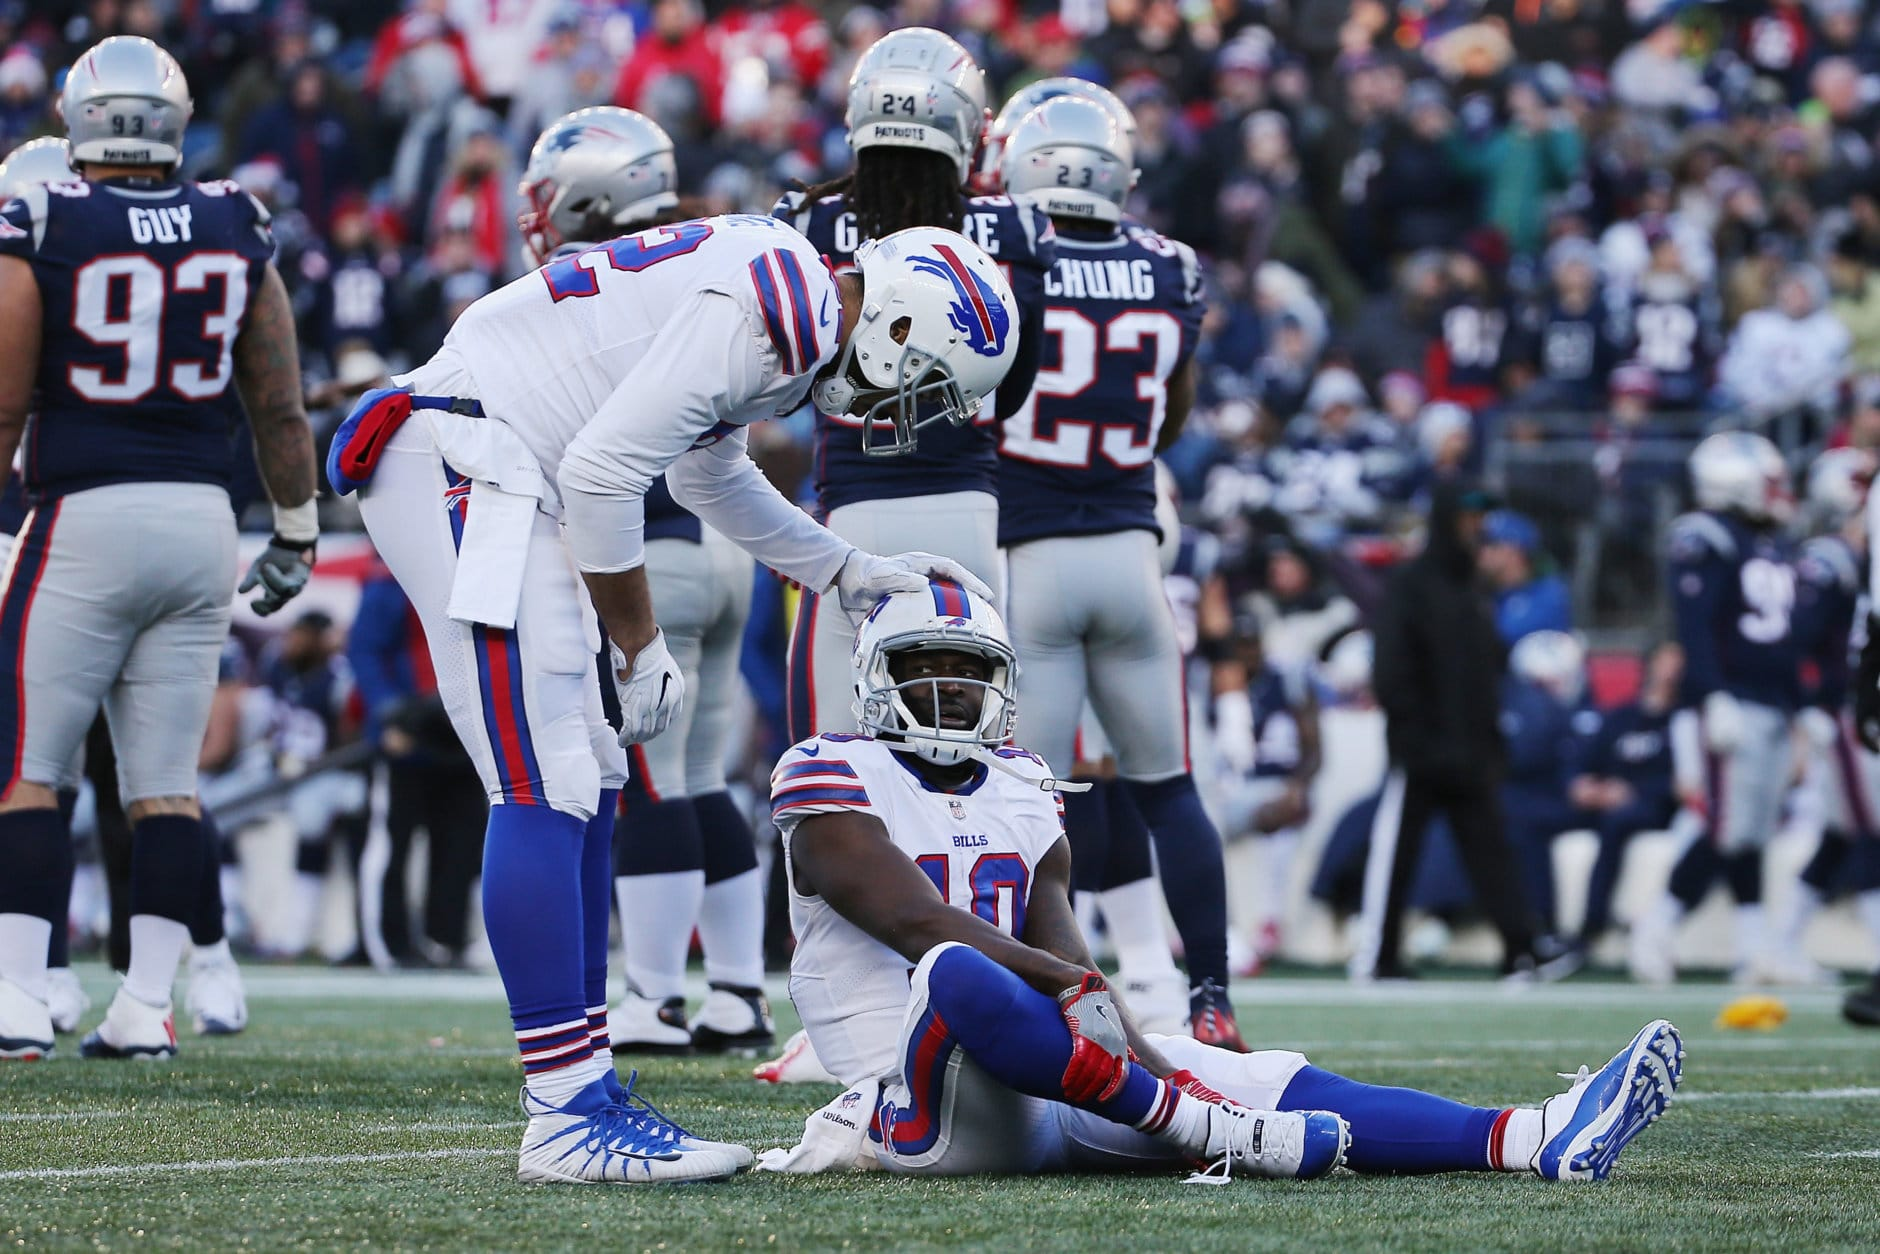 FOXBOROUGH, MA - DECEMBER 23:  Deonte Thompson #10 of the Buffalo Bills reacts after suffering an injury during the second half against the New England Patriots at Gillette Stadium on December 23, 2018 in Foxborough, Massachusetts.  (Photo by Jim Rogash/Getty Images)